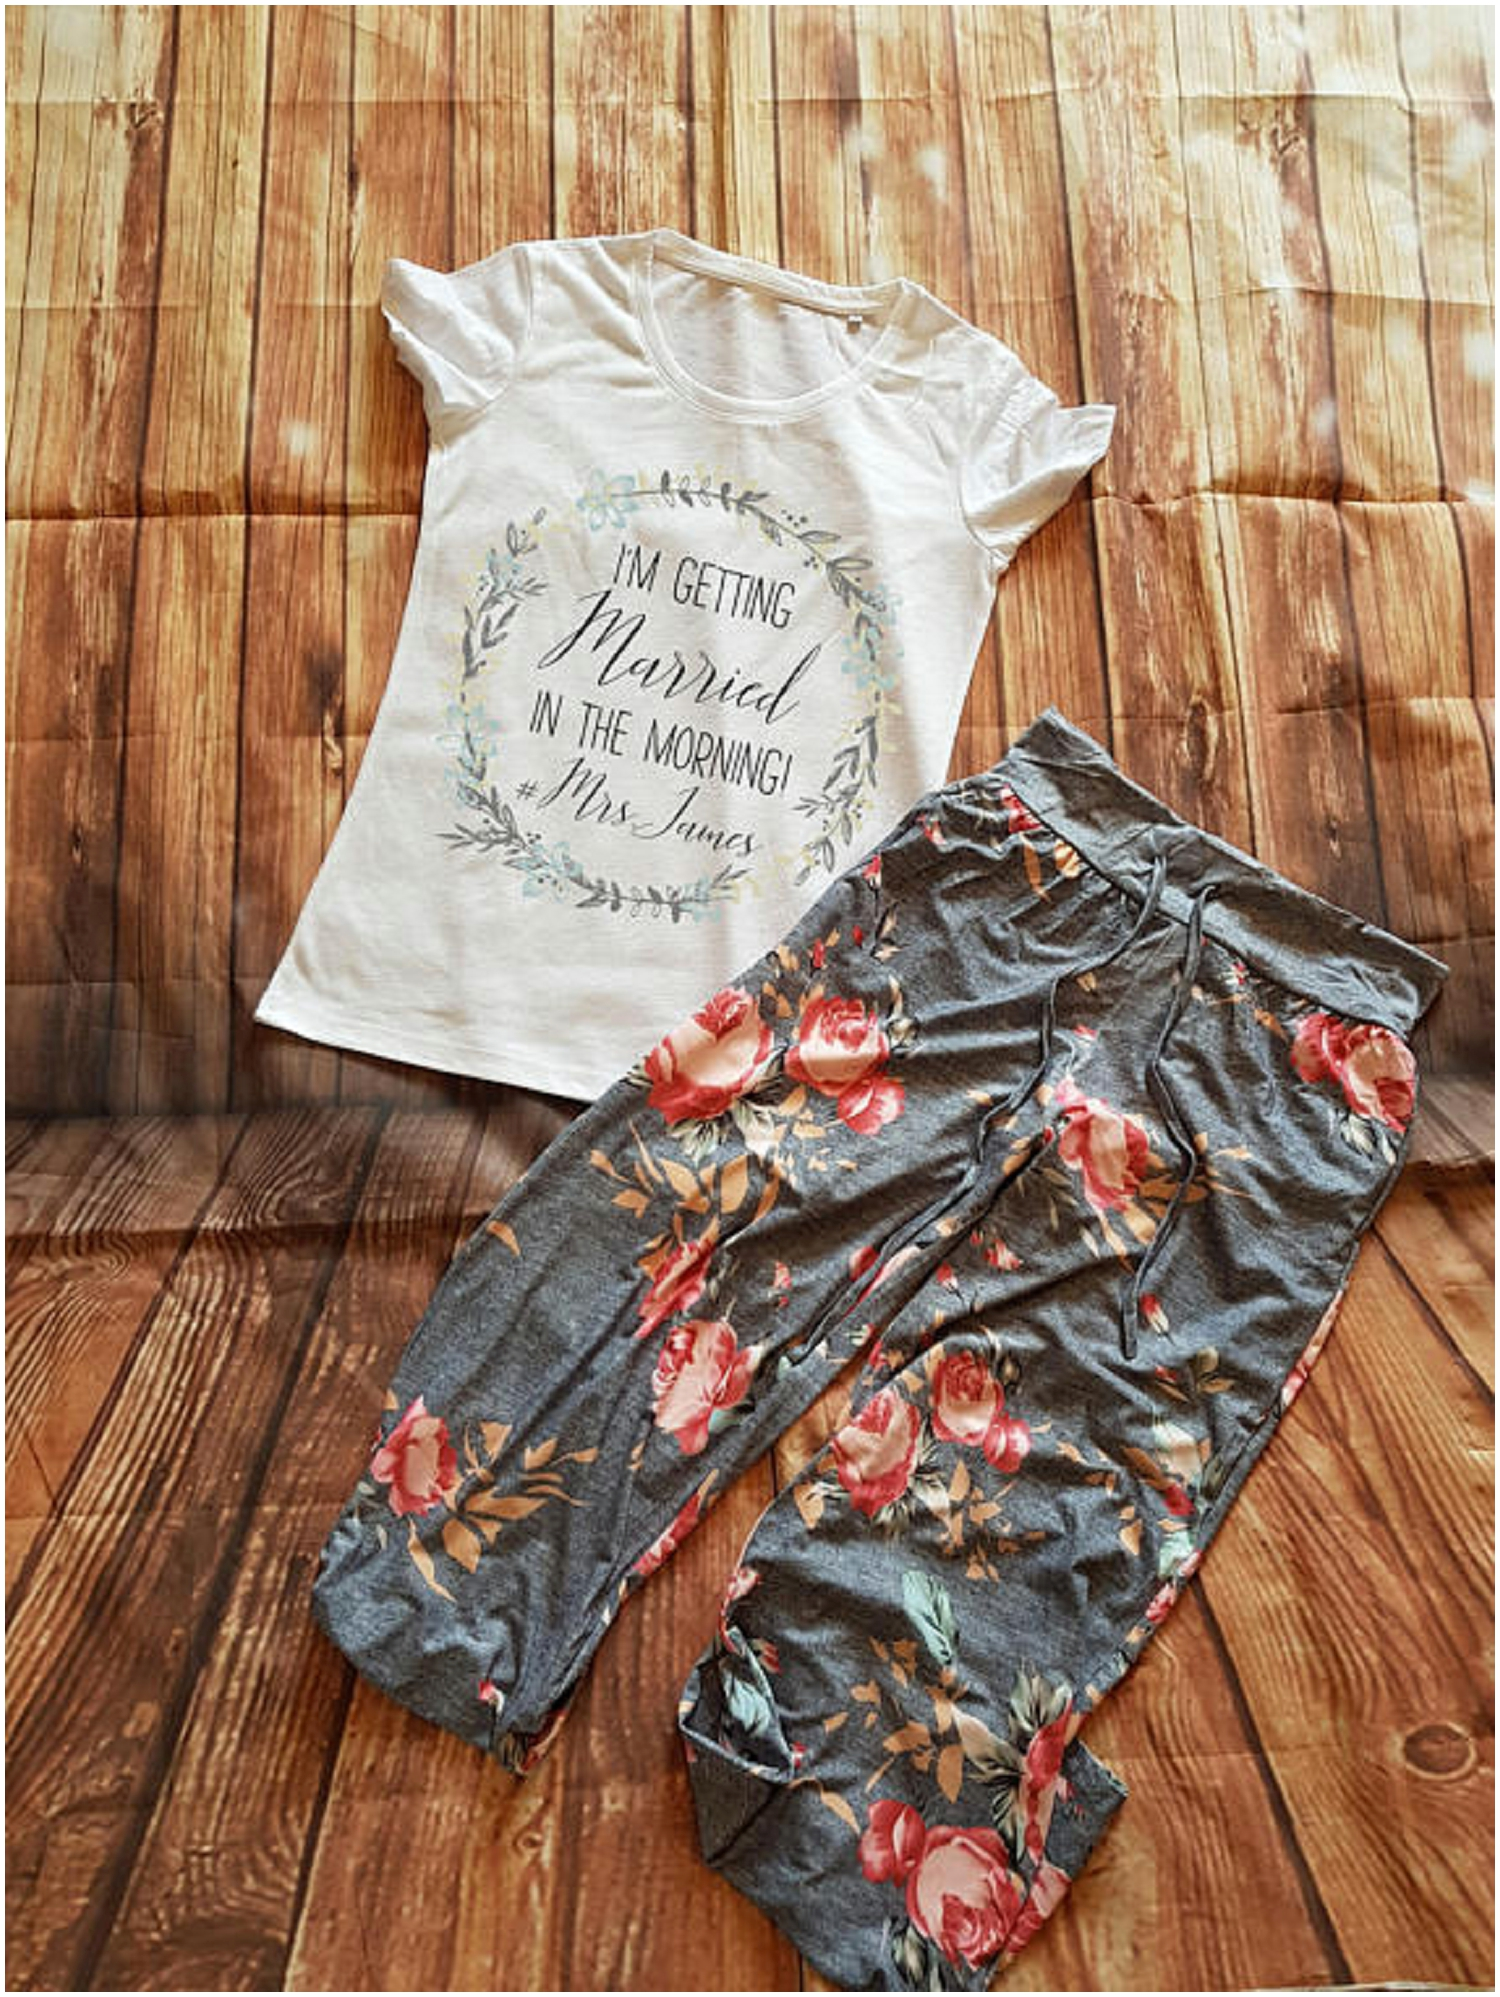 Want to stick with the floral? These sweatpants are comfy and adorable! Your bridal party will thank you for the comfort.